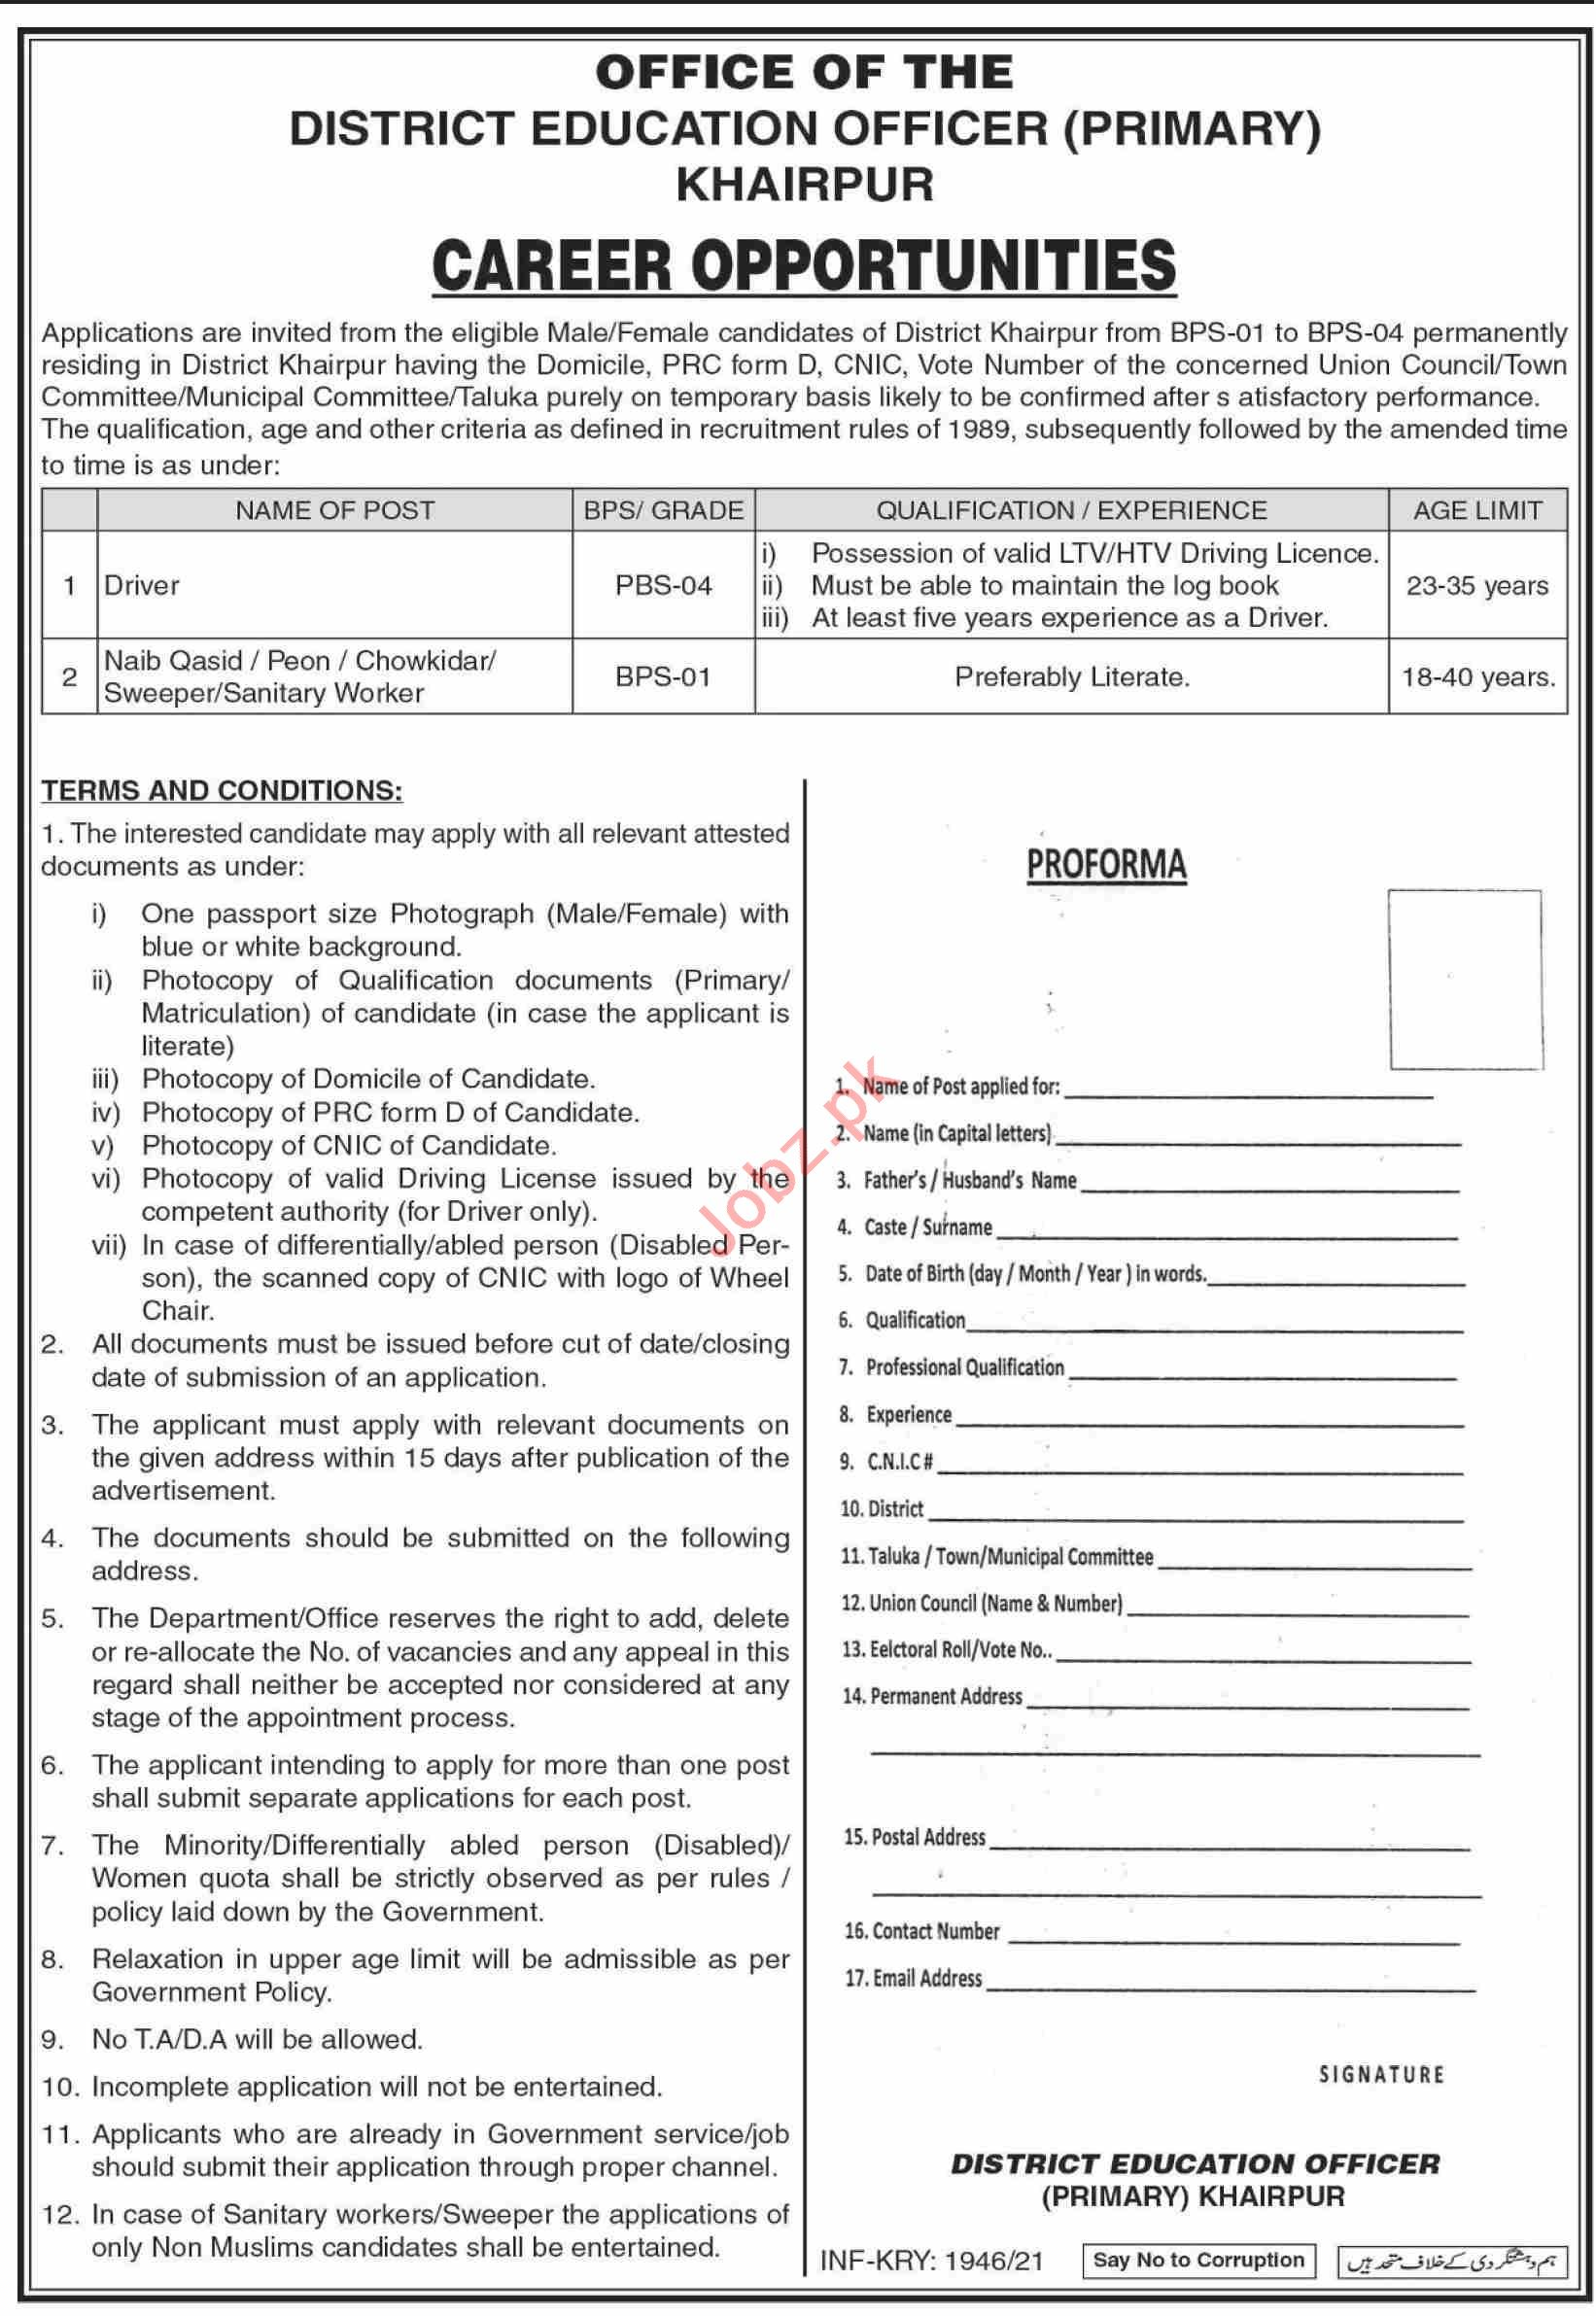 District Education Officer DEO Primary Khairpur Jobs 2021